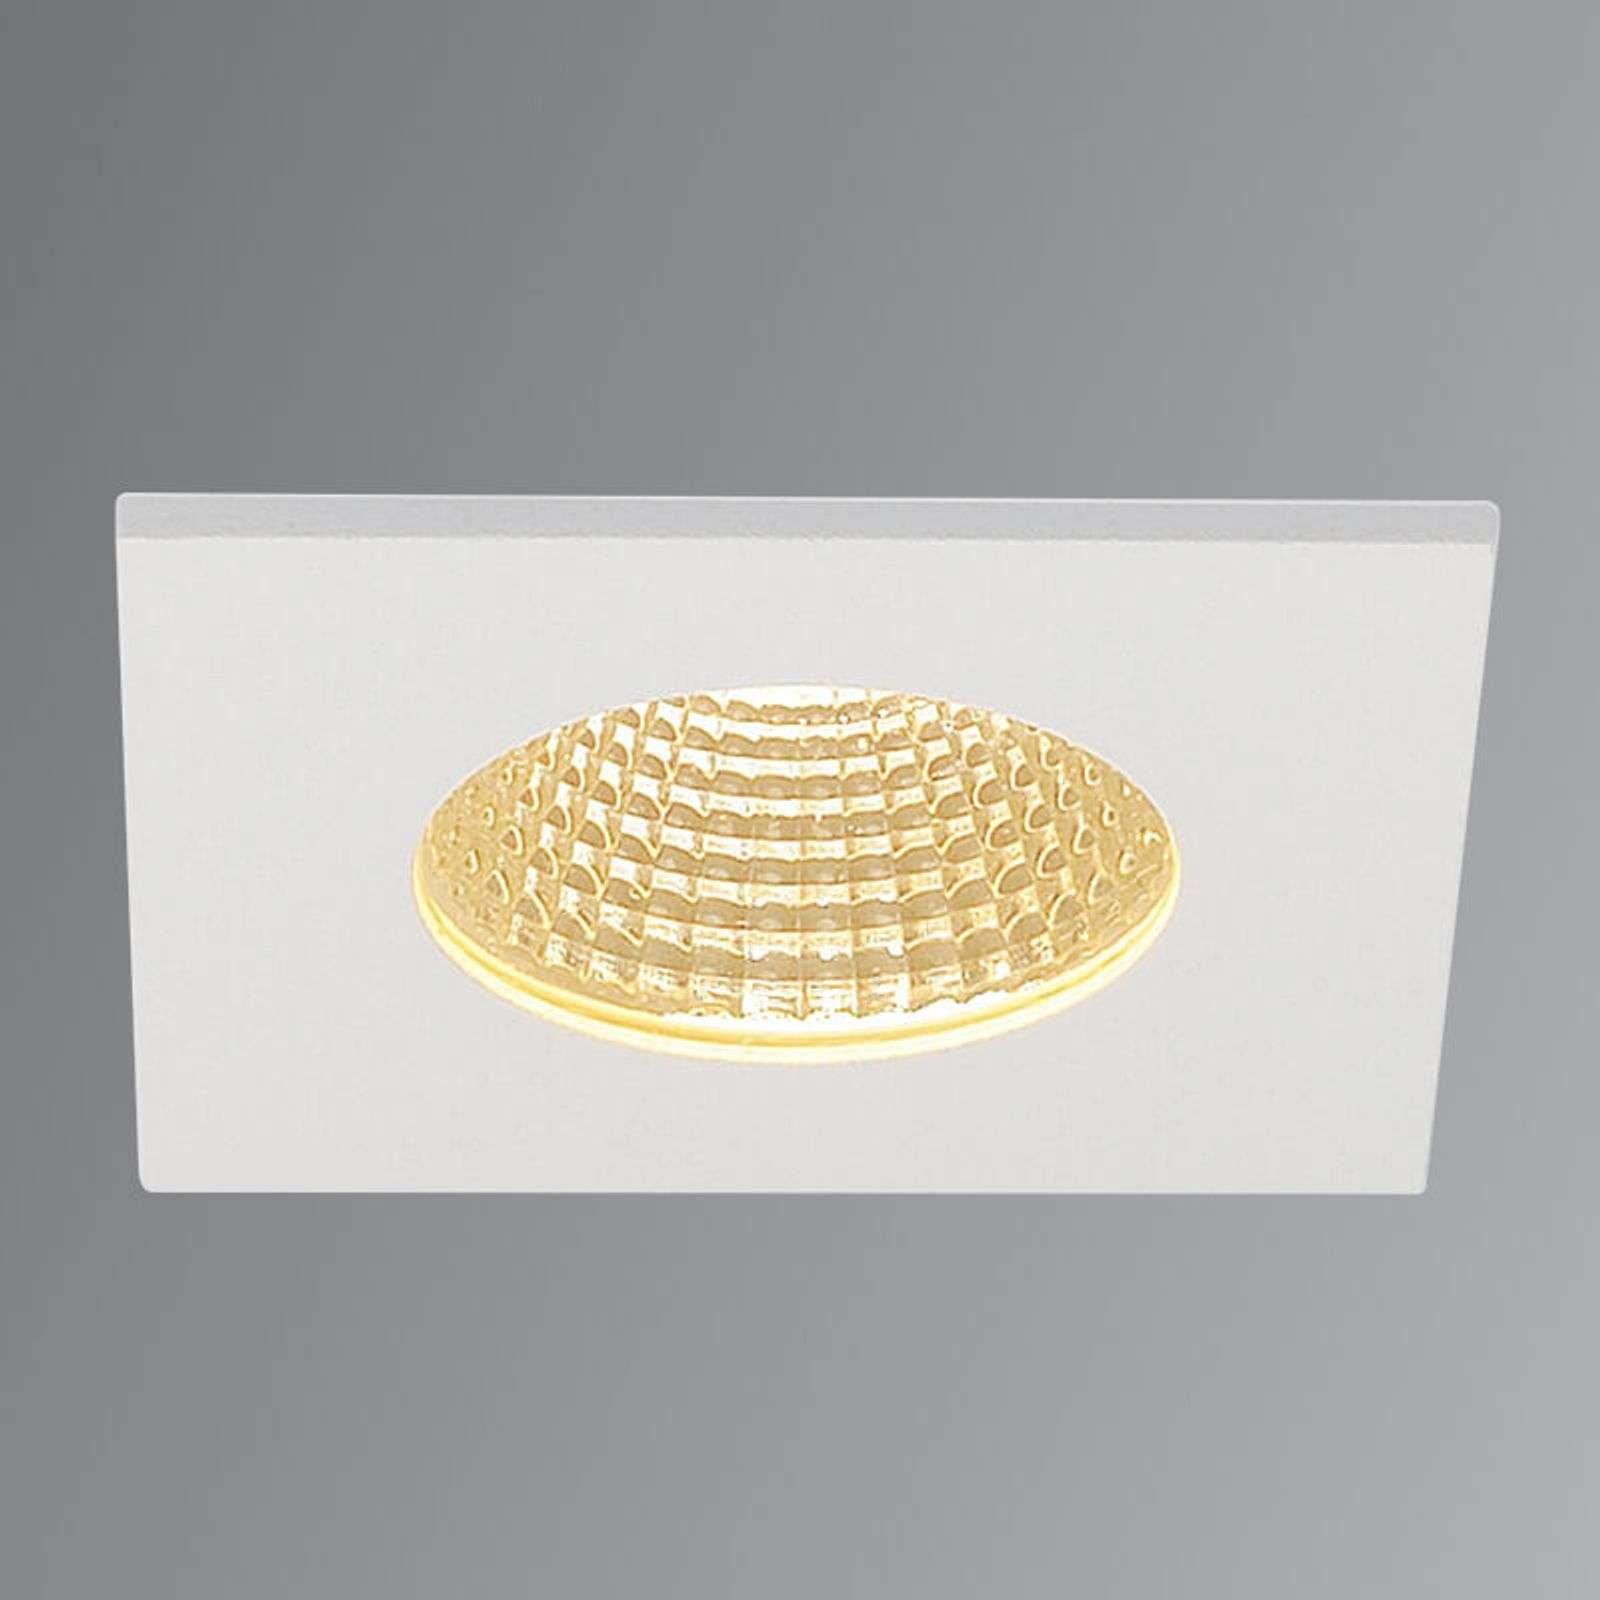 Spot LED encastrable Patta-I blanc mat